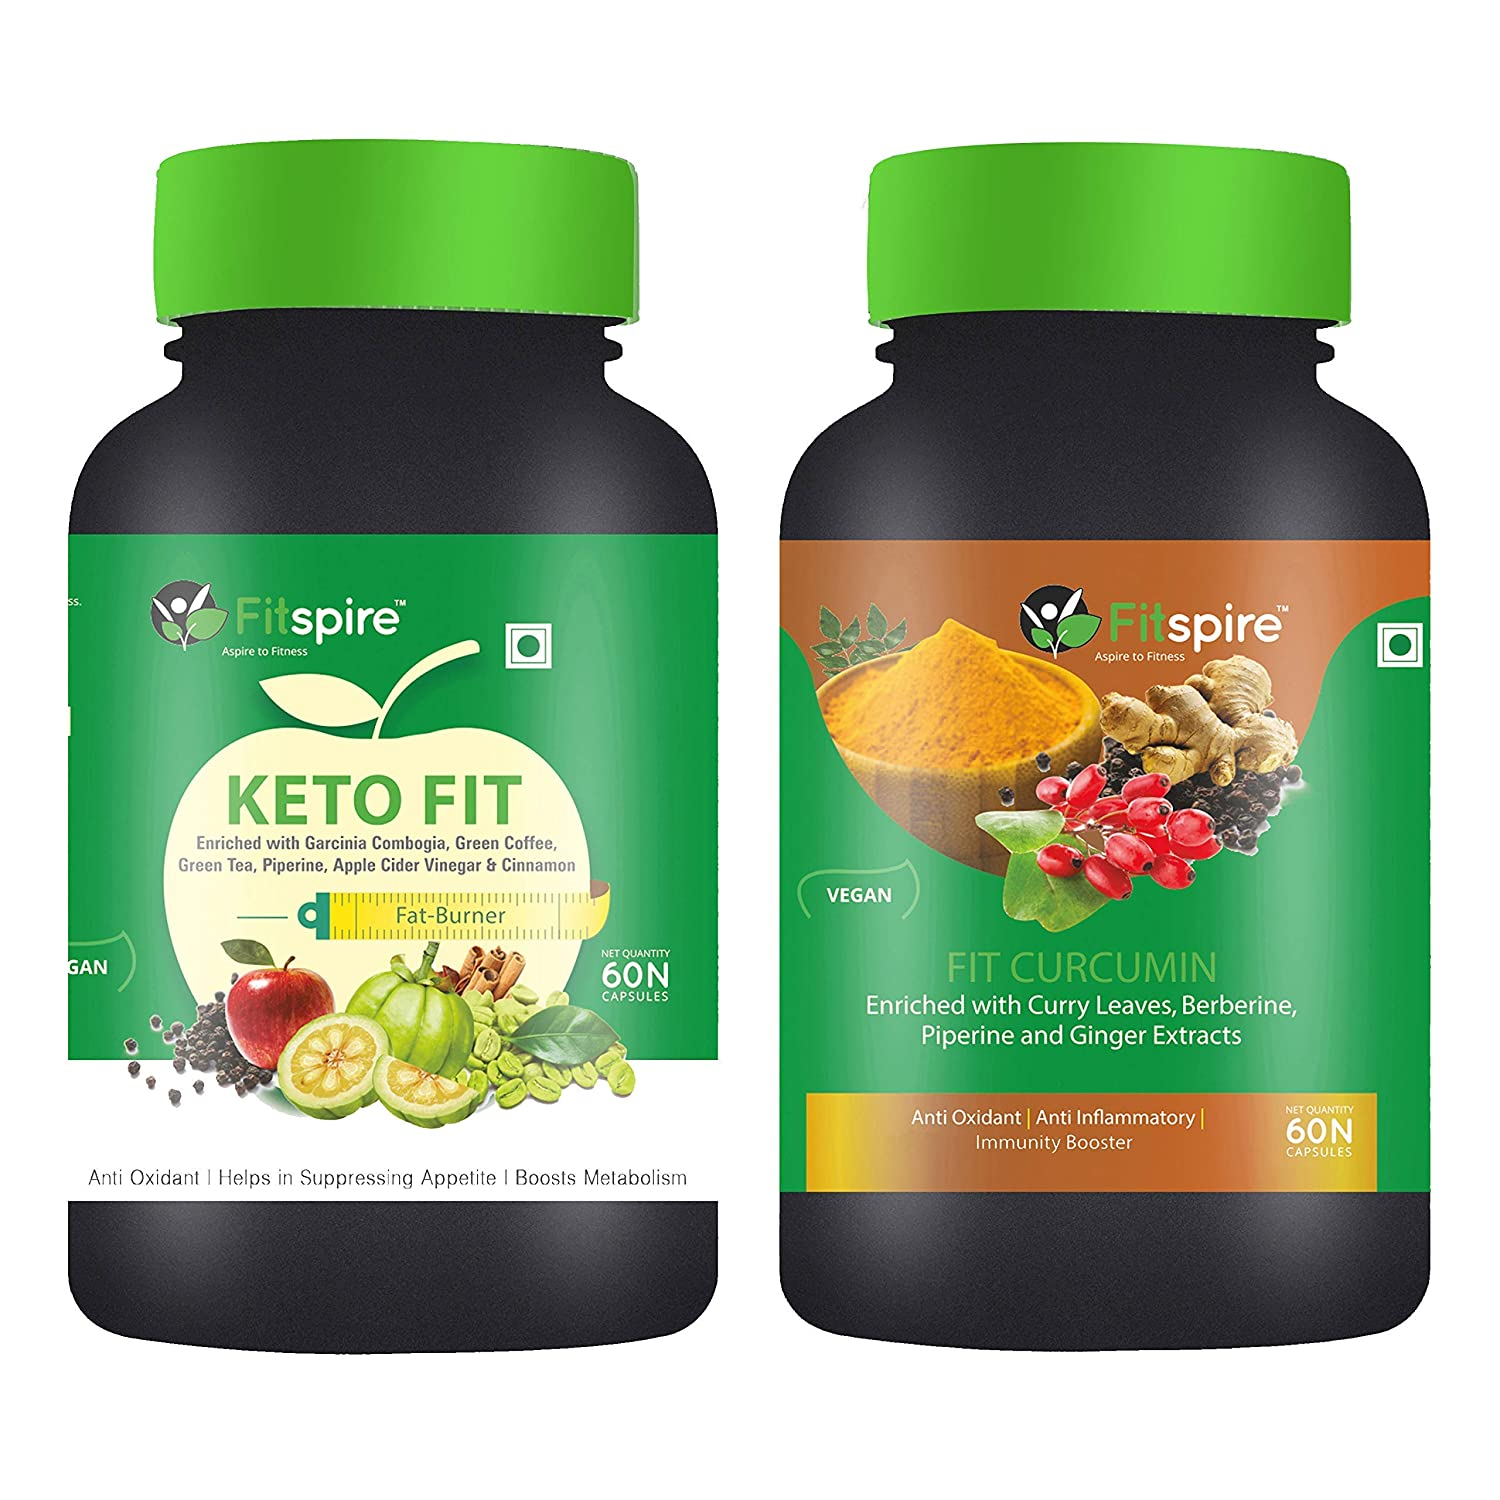 Fitspire Keto Fit & Curcumin, Immunity Booster - 60 Capsules (Pack Of 2)